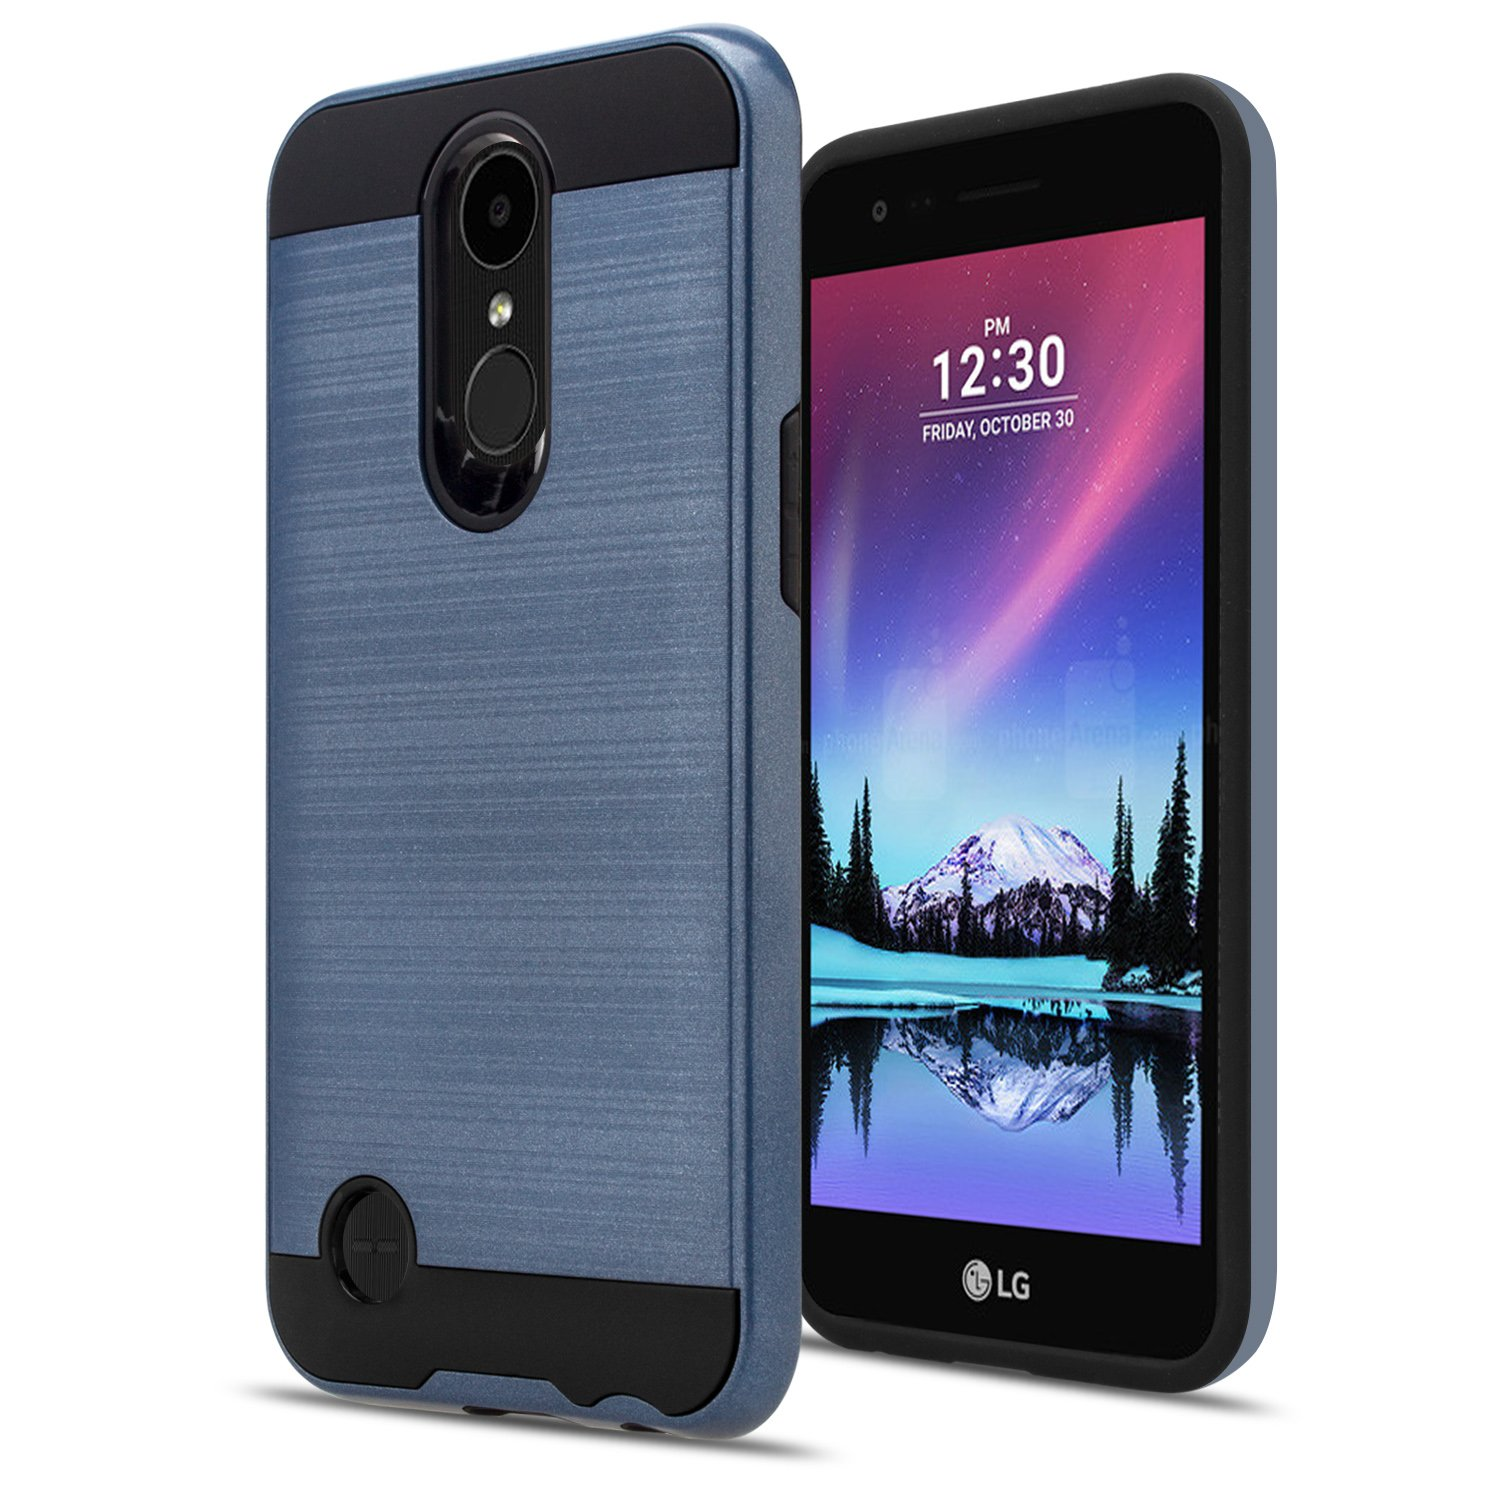 LG K20 V Case,LG K20 Plus / LG K10 2017 / LG VS501 / LG Grace / LG Harmony Case With HD Screen Protector,Aomax Dual Layer Shockproof Non-slip Hybrid Silicone Rubber For LG K10 2017 VLS Black